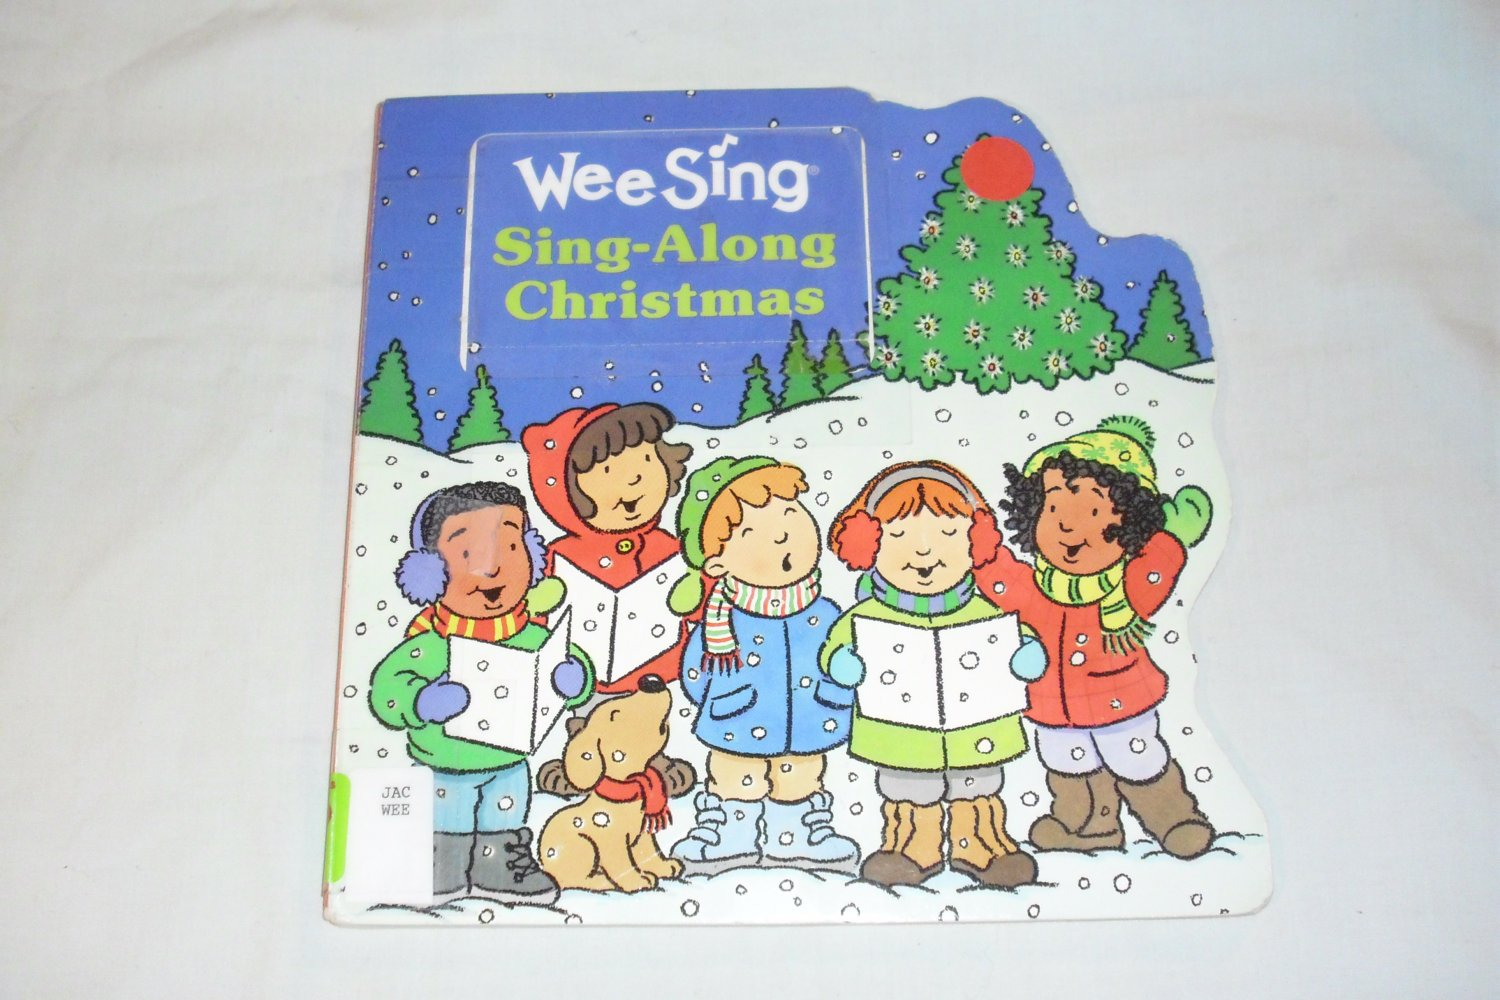 Sing-Along Christmas by Wee Sing